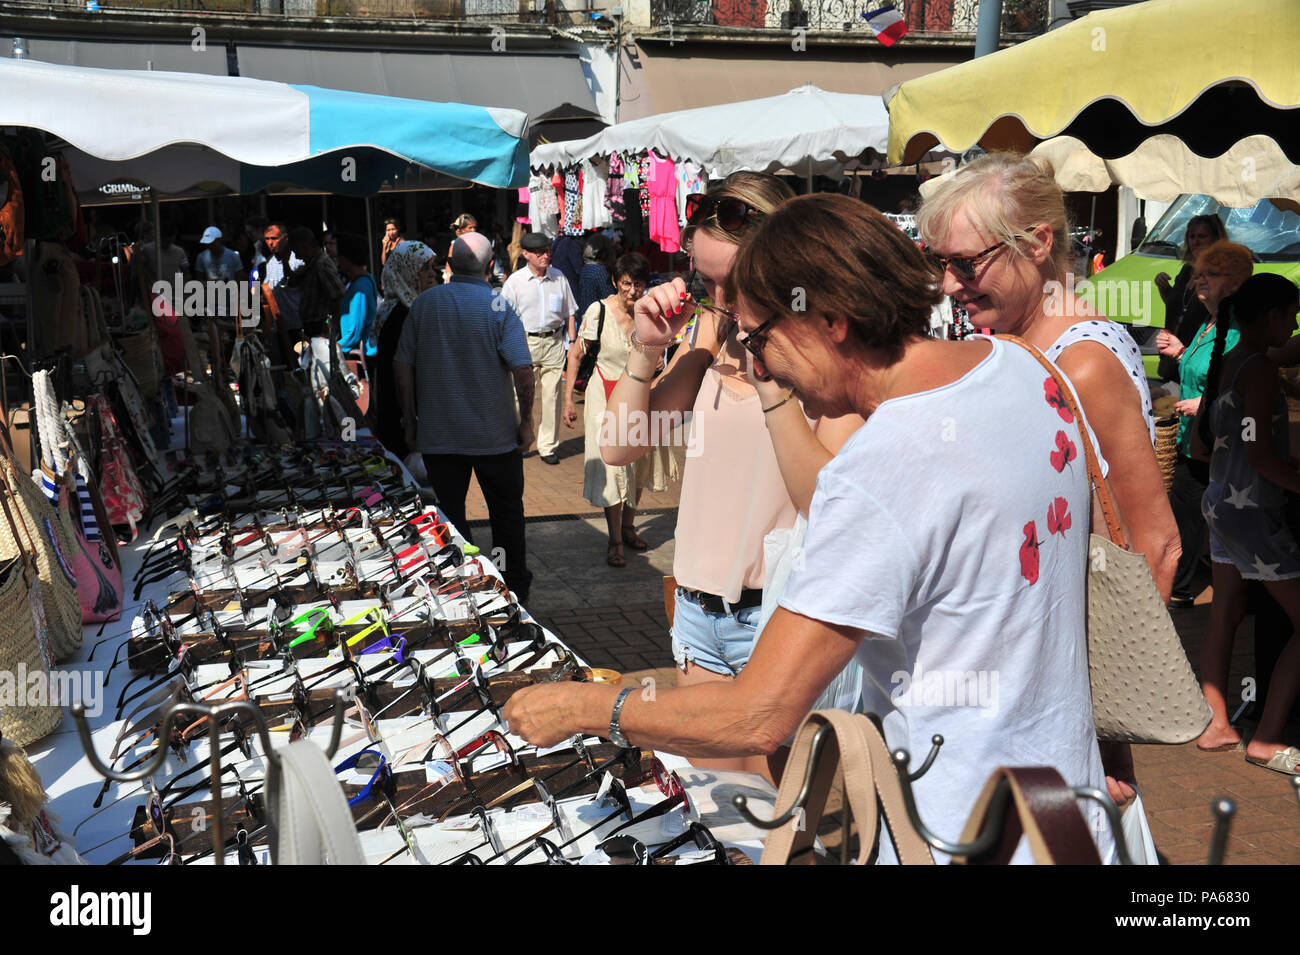 In And Out Beziers a group of girlfriends out shopping and trying on sunglasses